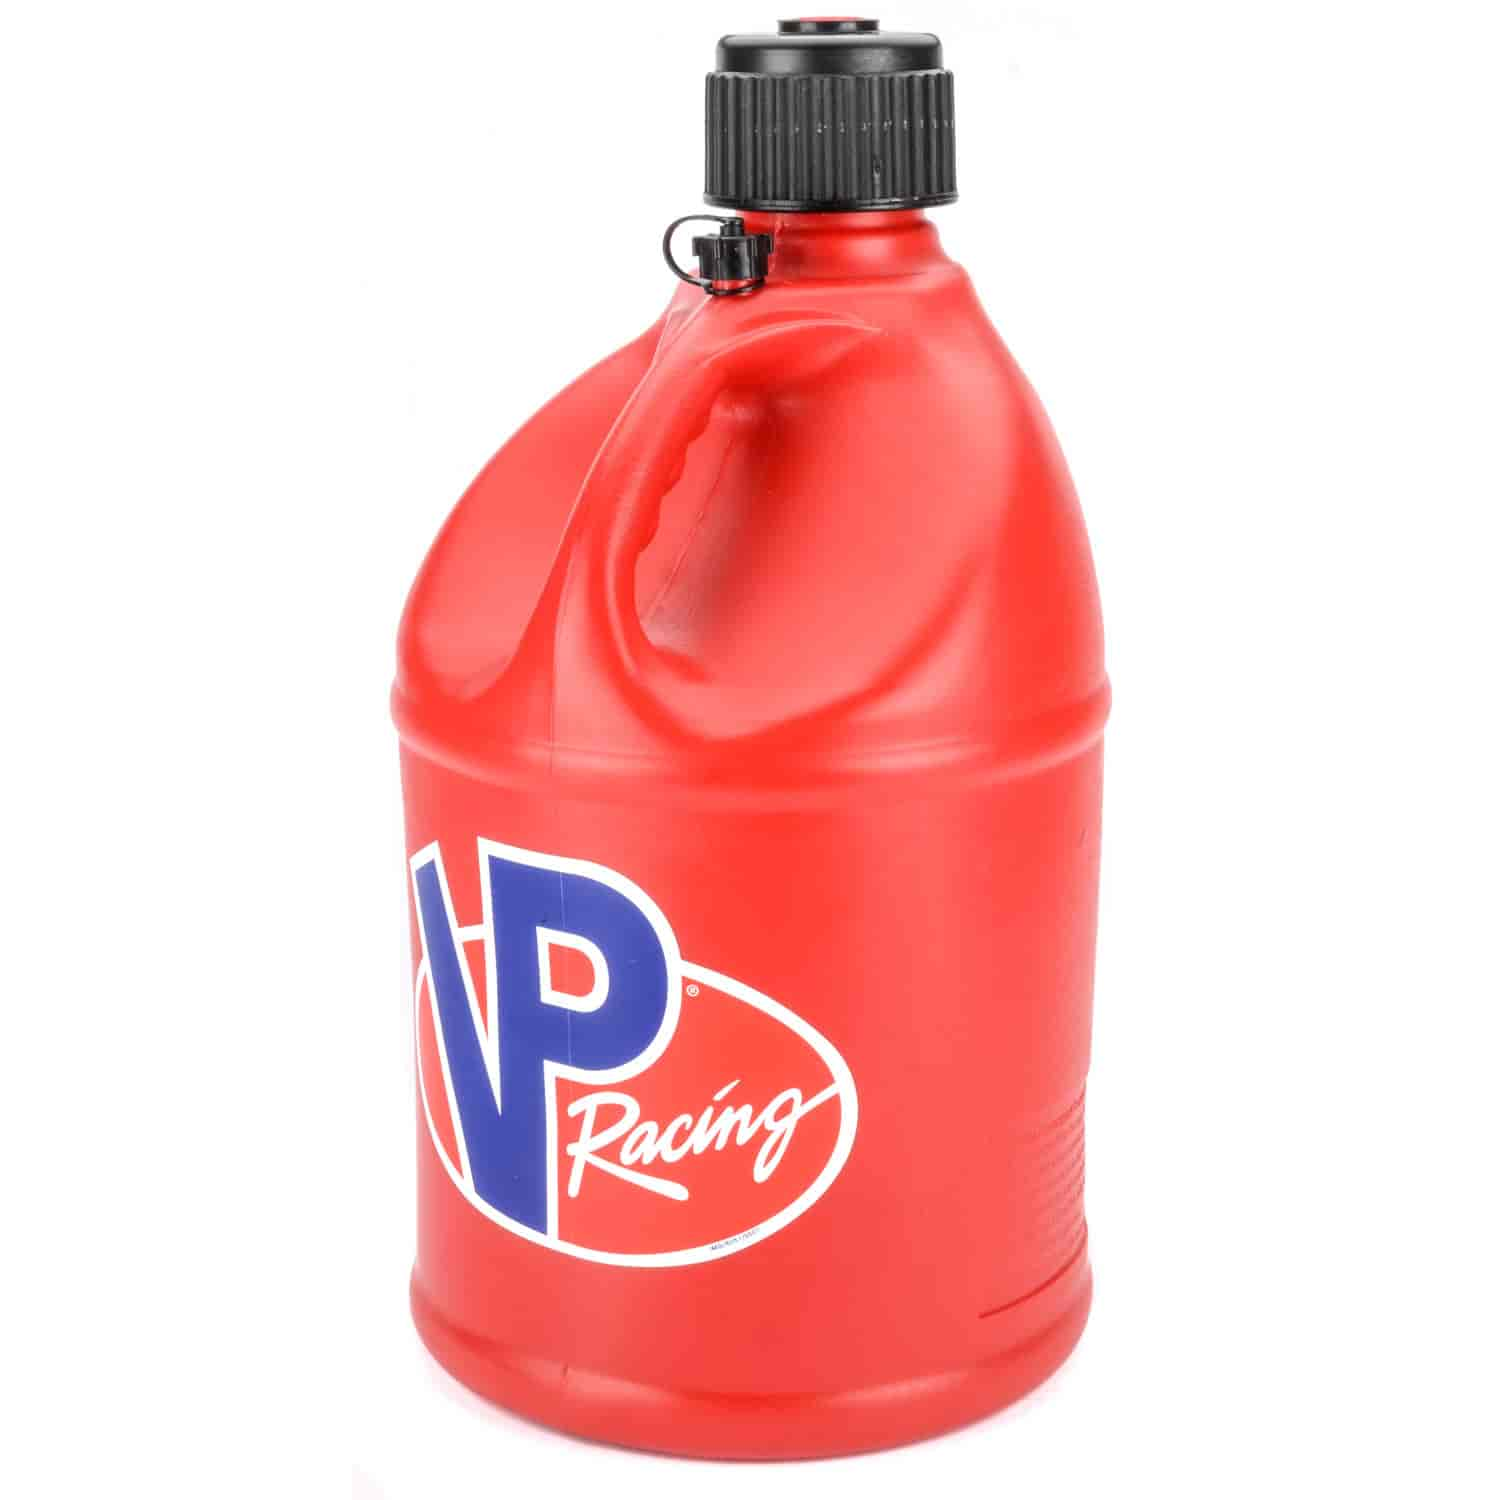 Pit Pal 185 - Pit Pal 5-Gallon Fuel Jug